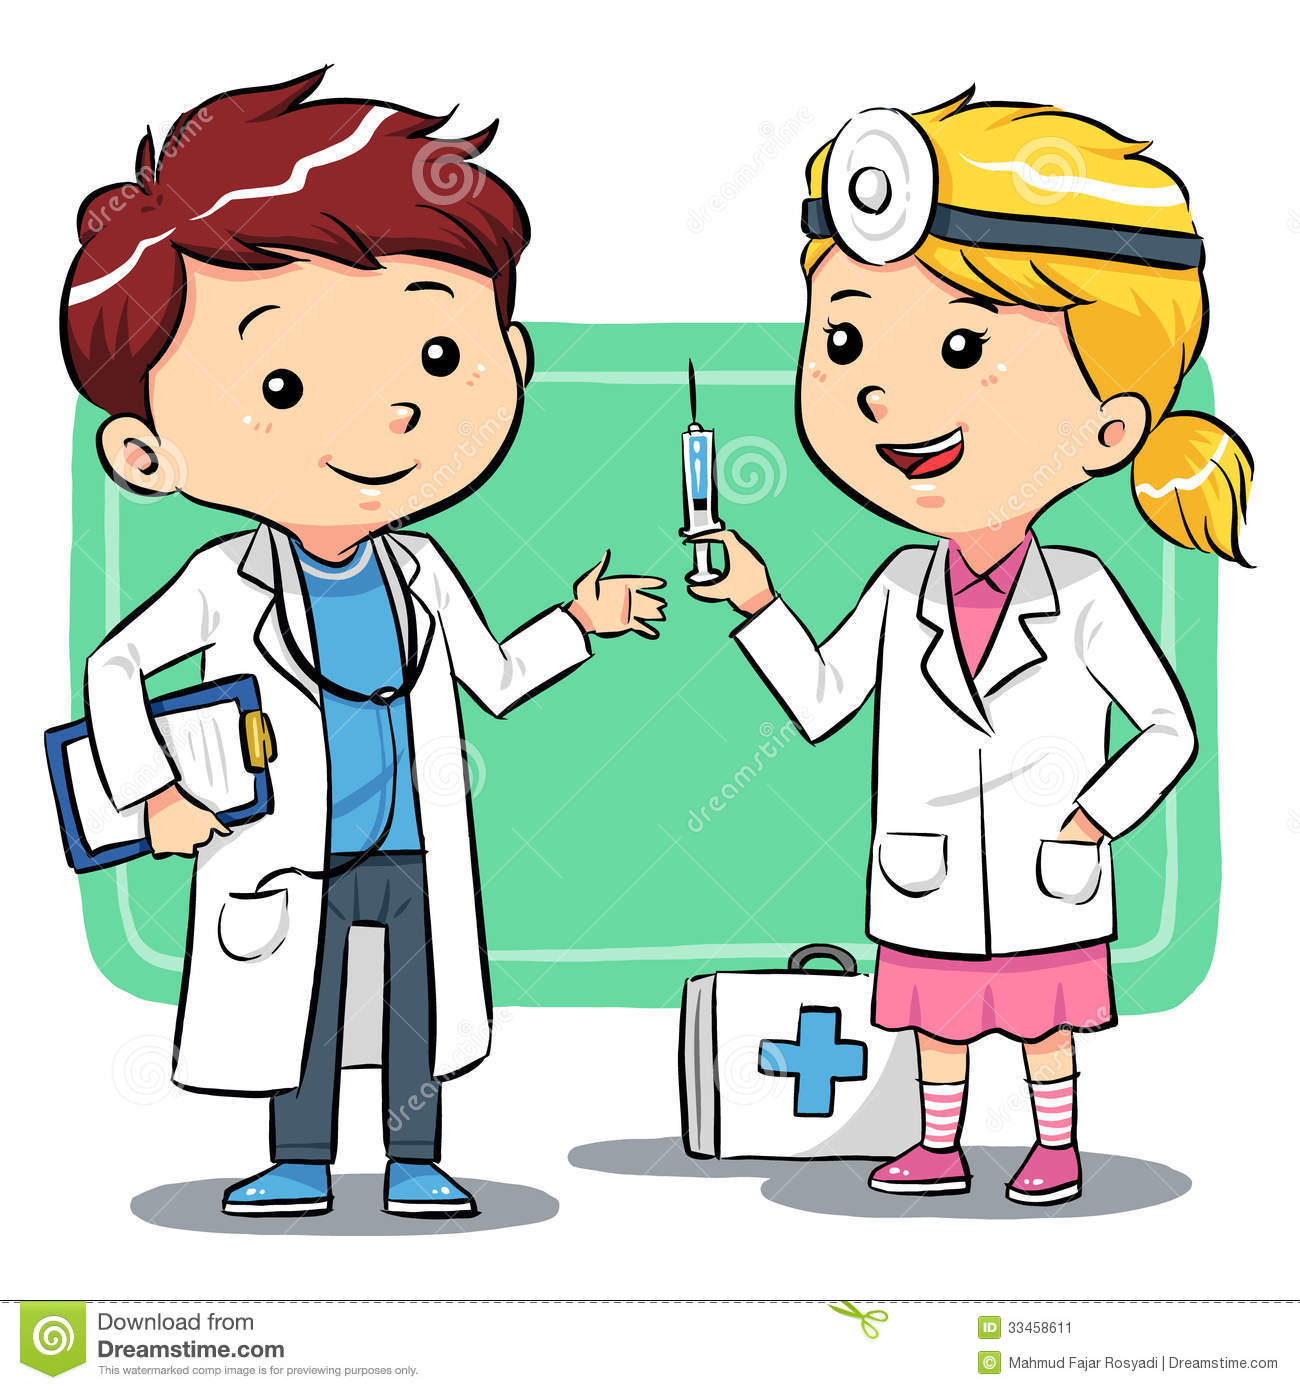 Kids doctor clipart svg free library Doctor Pictures For Kids Group with 64+ items svg free library